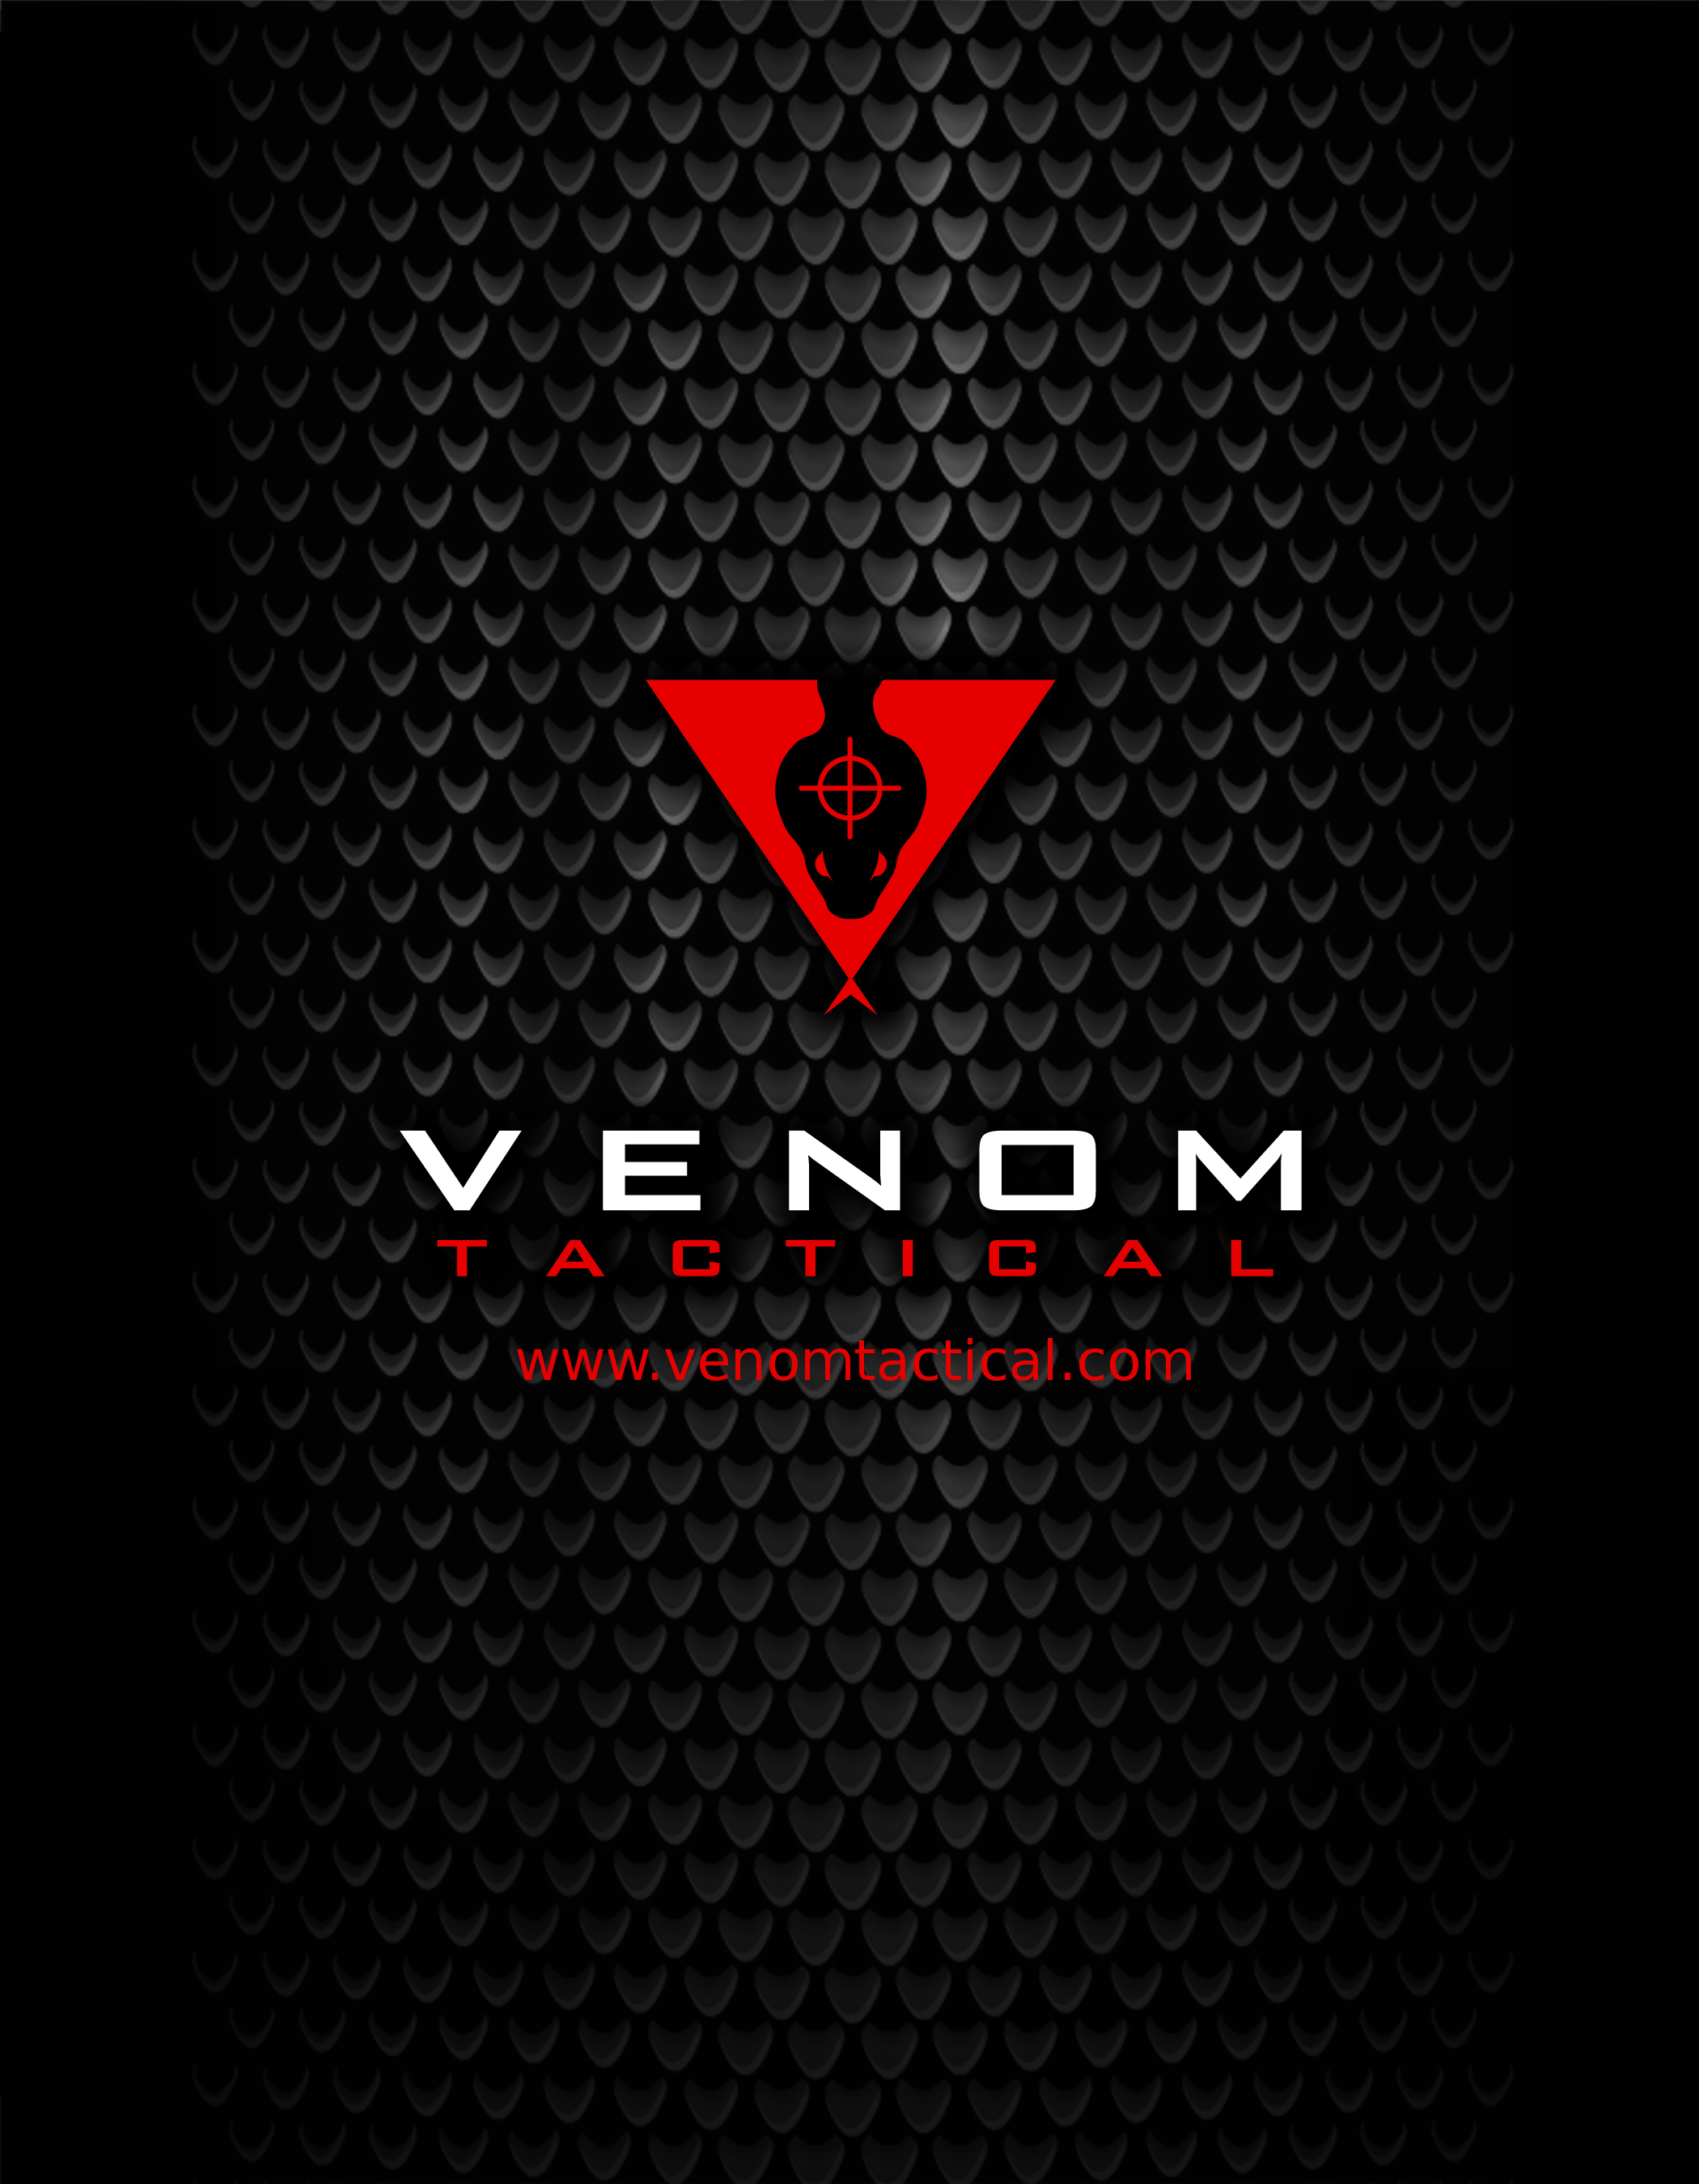 Venom Tactical